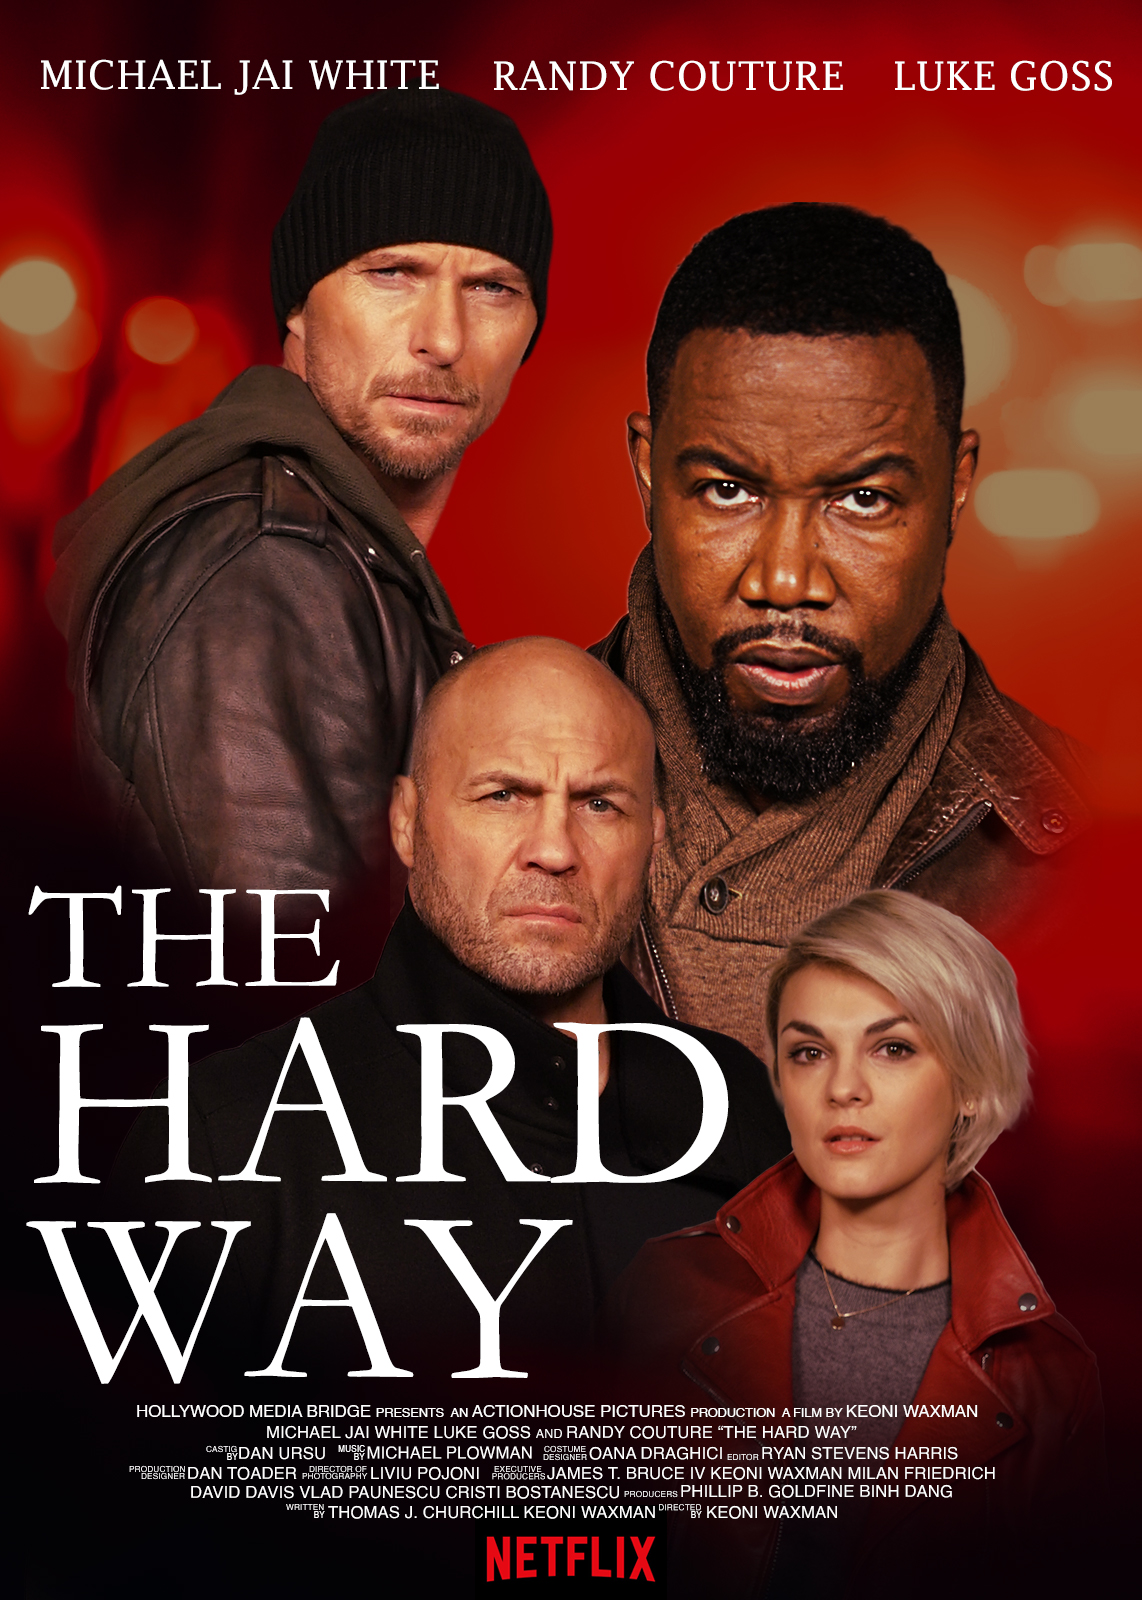 The Hard Way 2019 Imdb